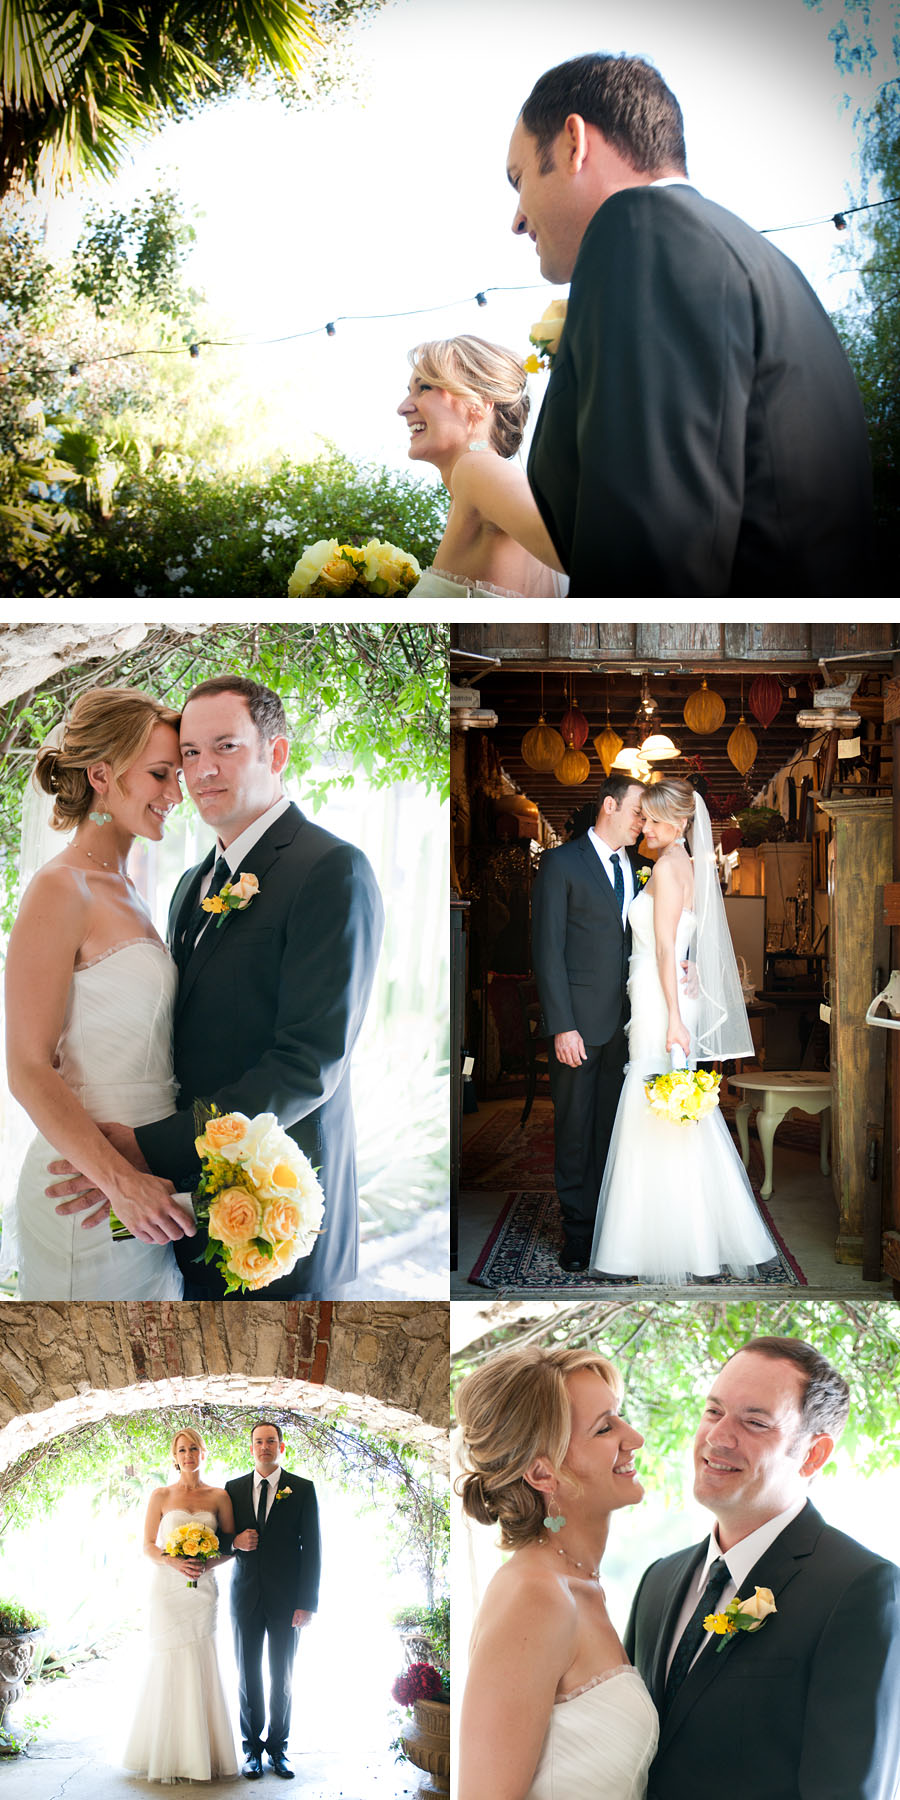 Shawn and Christina Wedding by Paola Nazati Photography, The Hidden Chateau